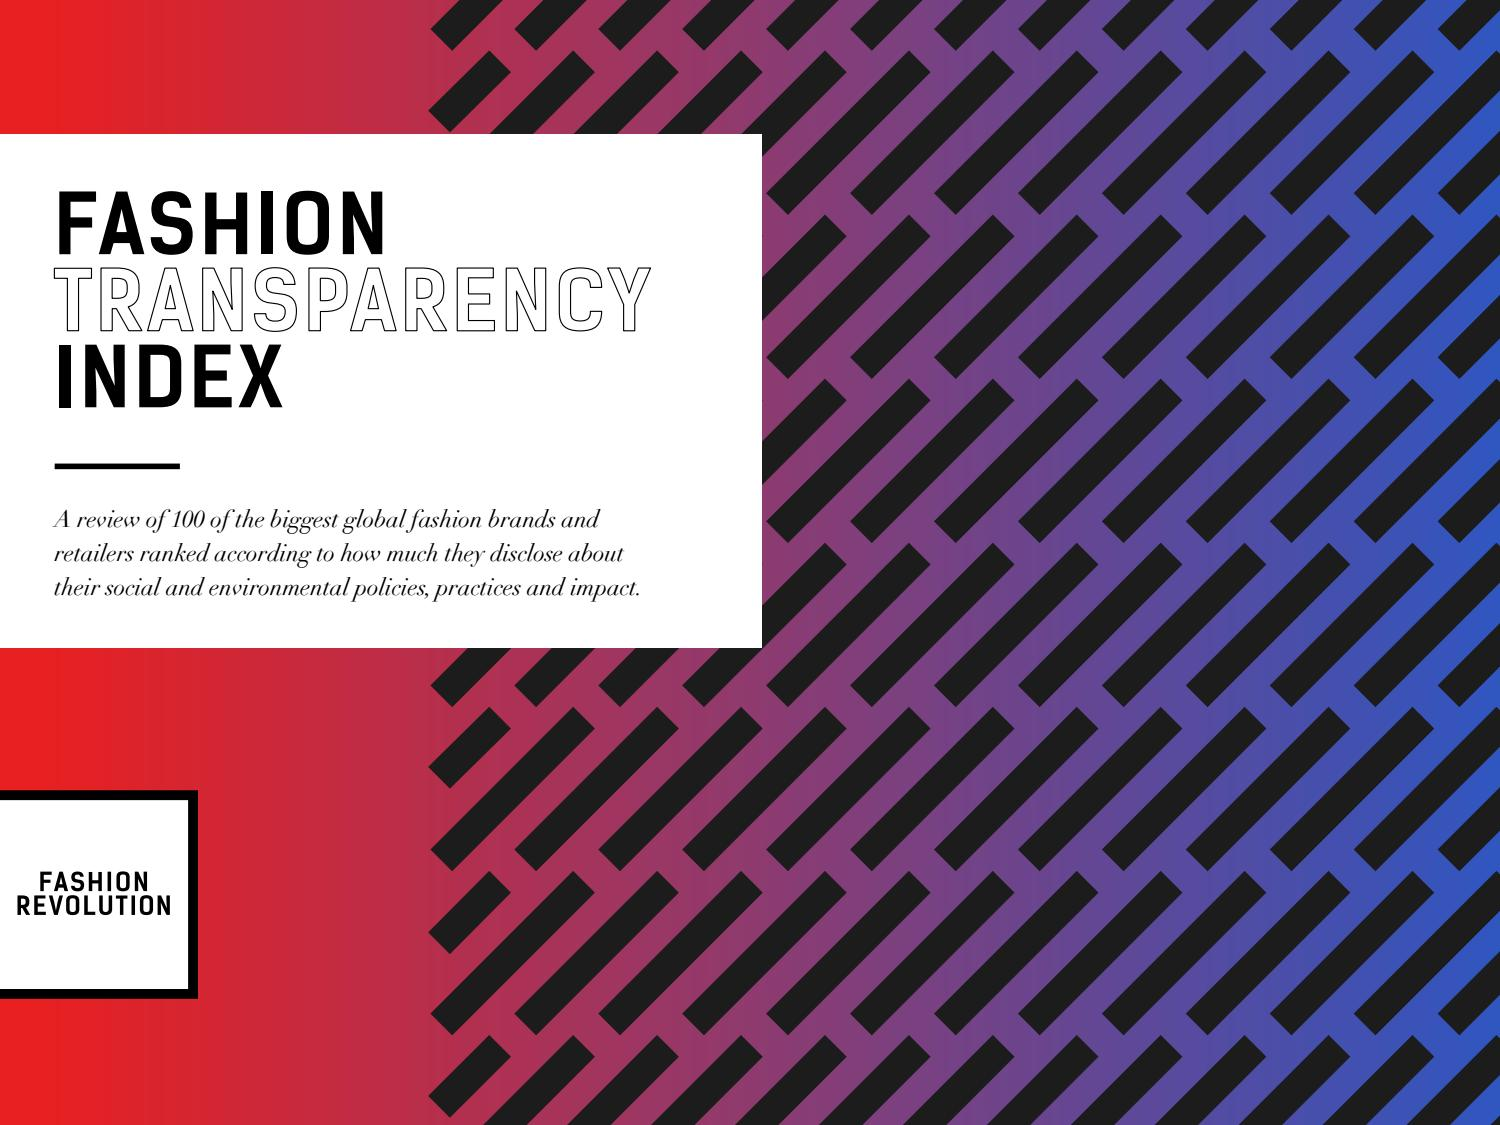 611963e2dd5 Fashion Transparency Index 2017 by Fashion Revolution - issuu